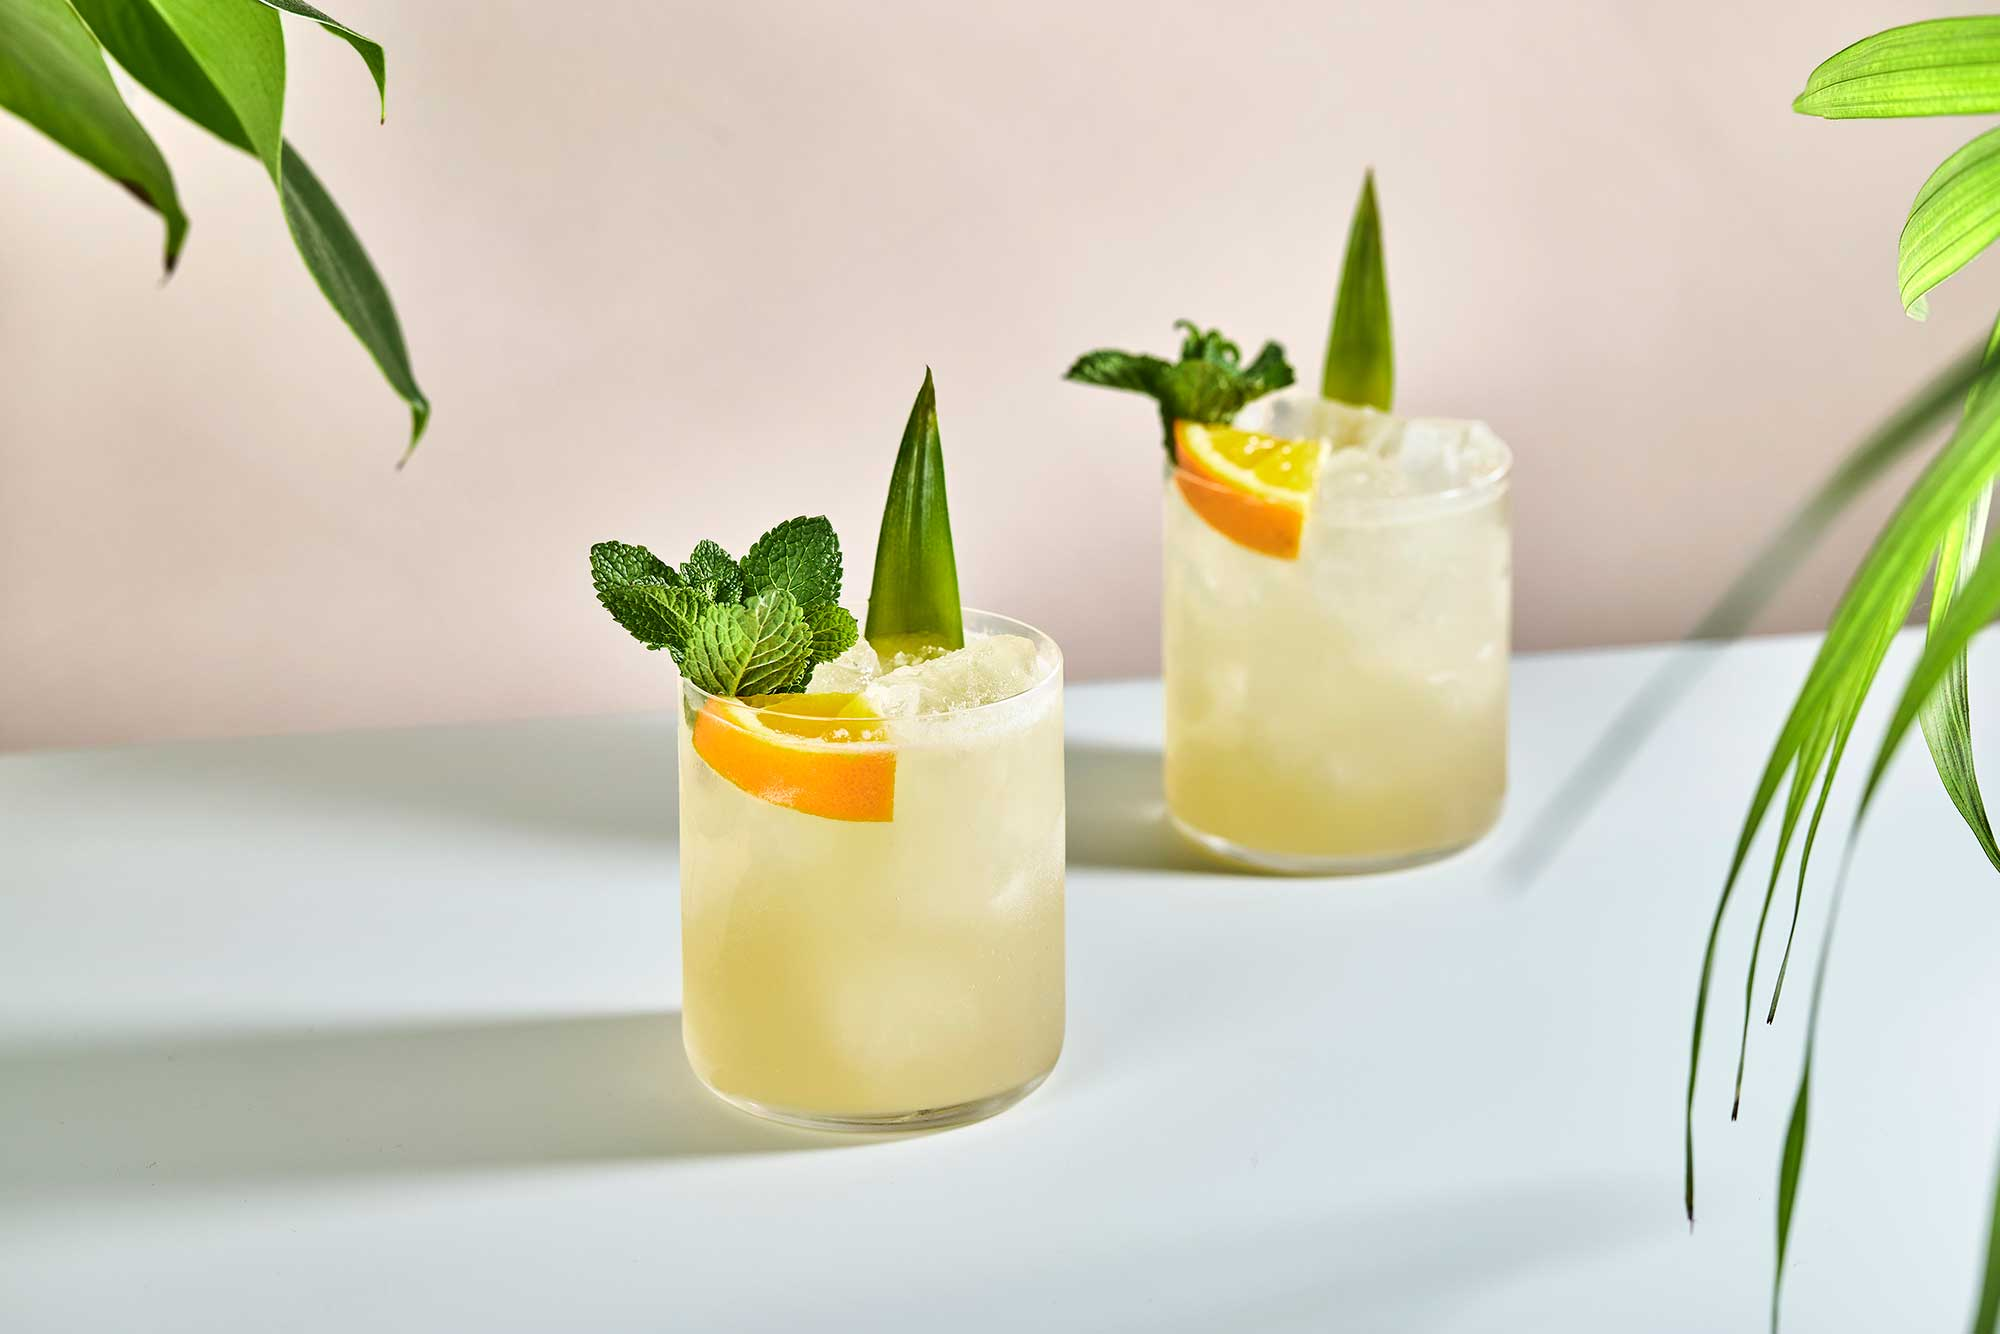 Start your Stir-Up subscription with an expertly crafted Mai Tai